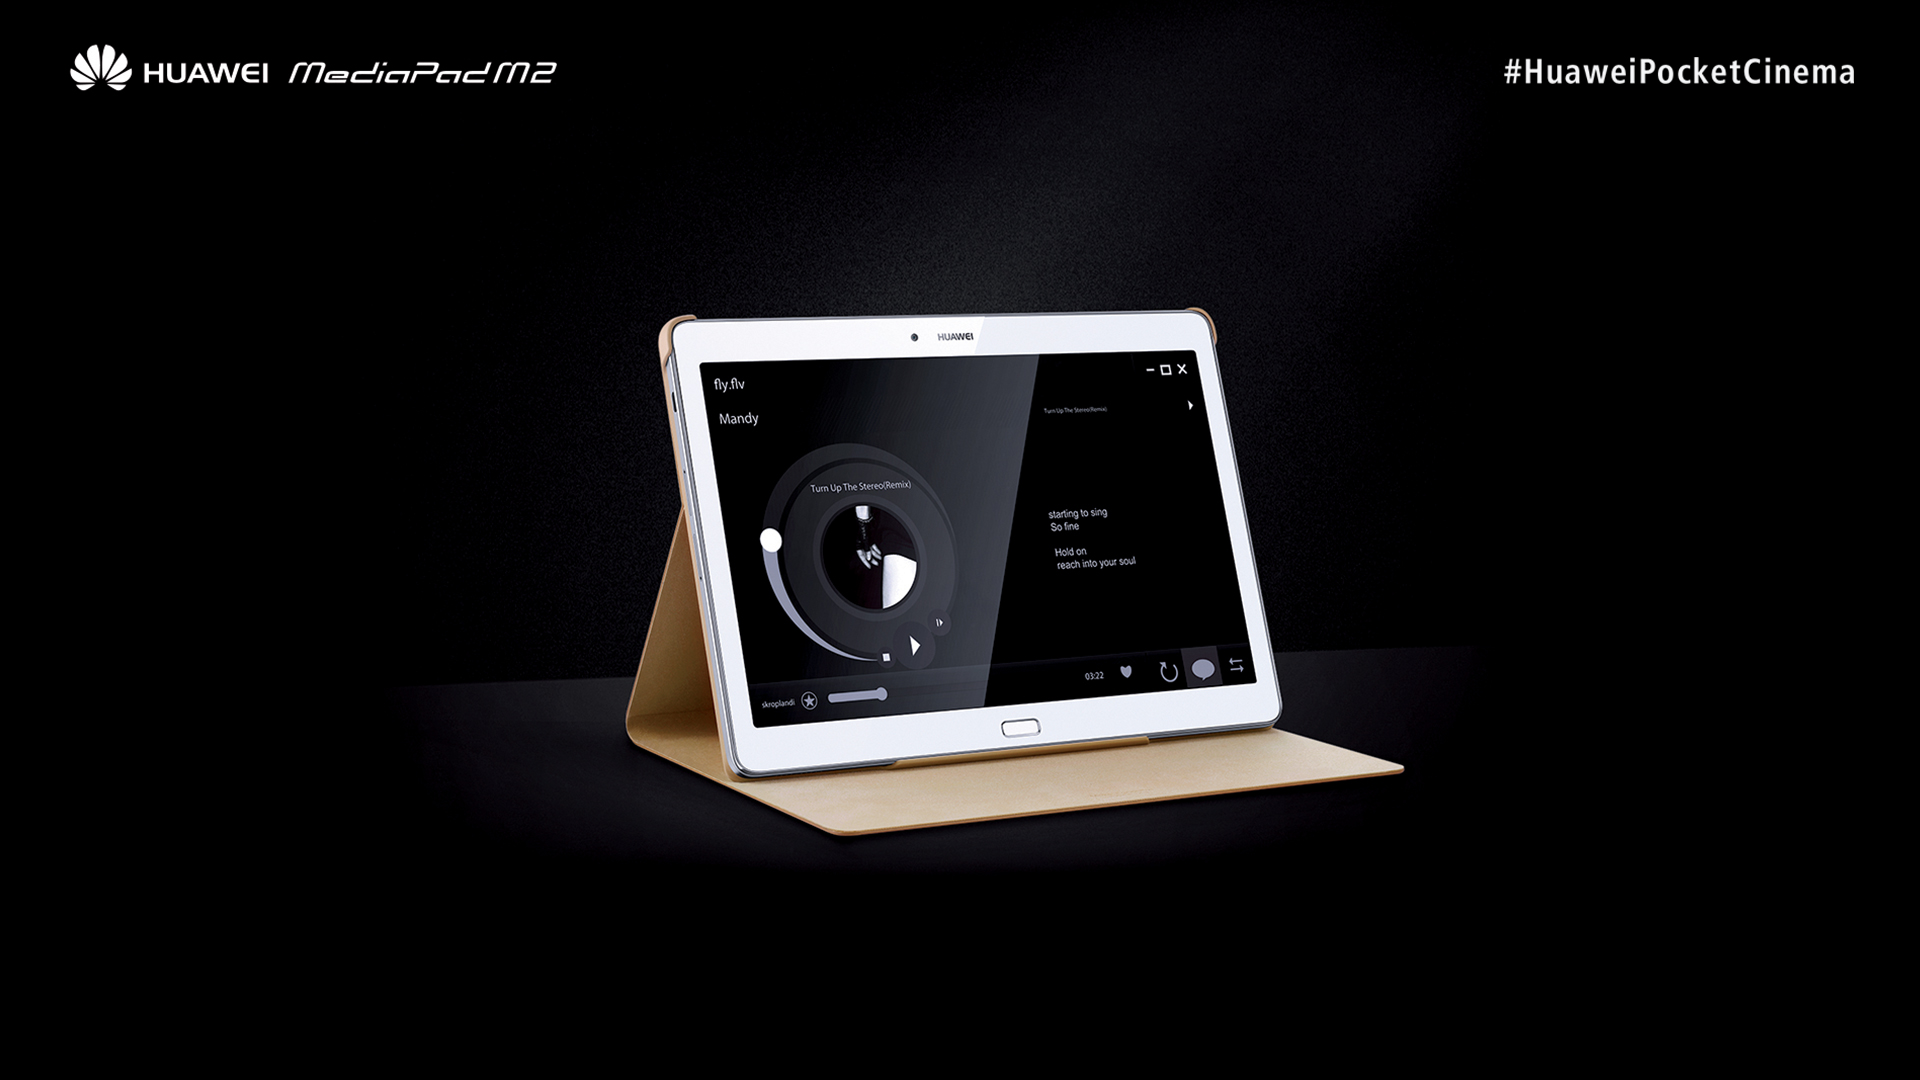 Huawei_pocket_cinema_tablette